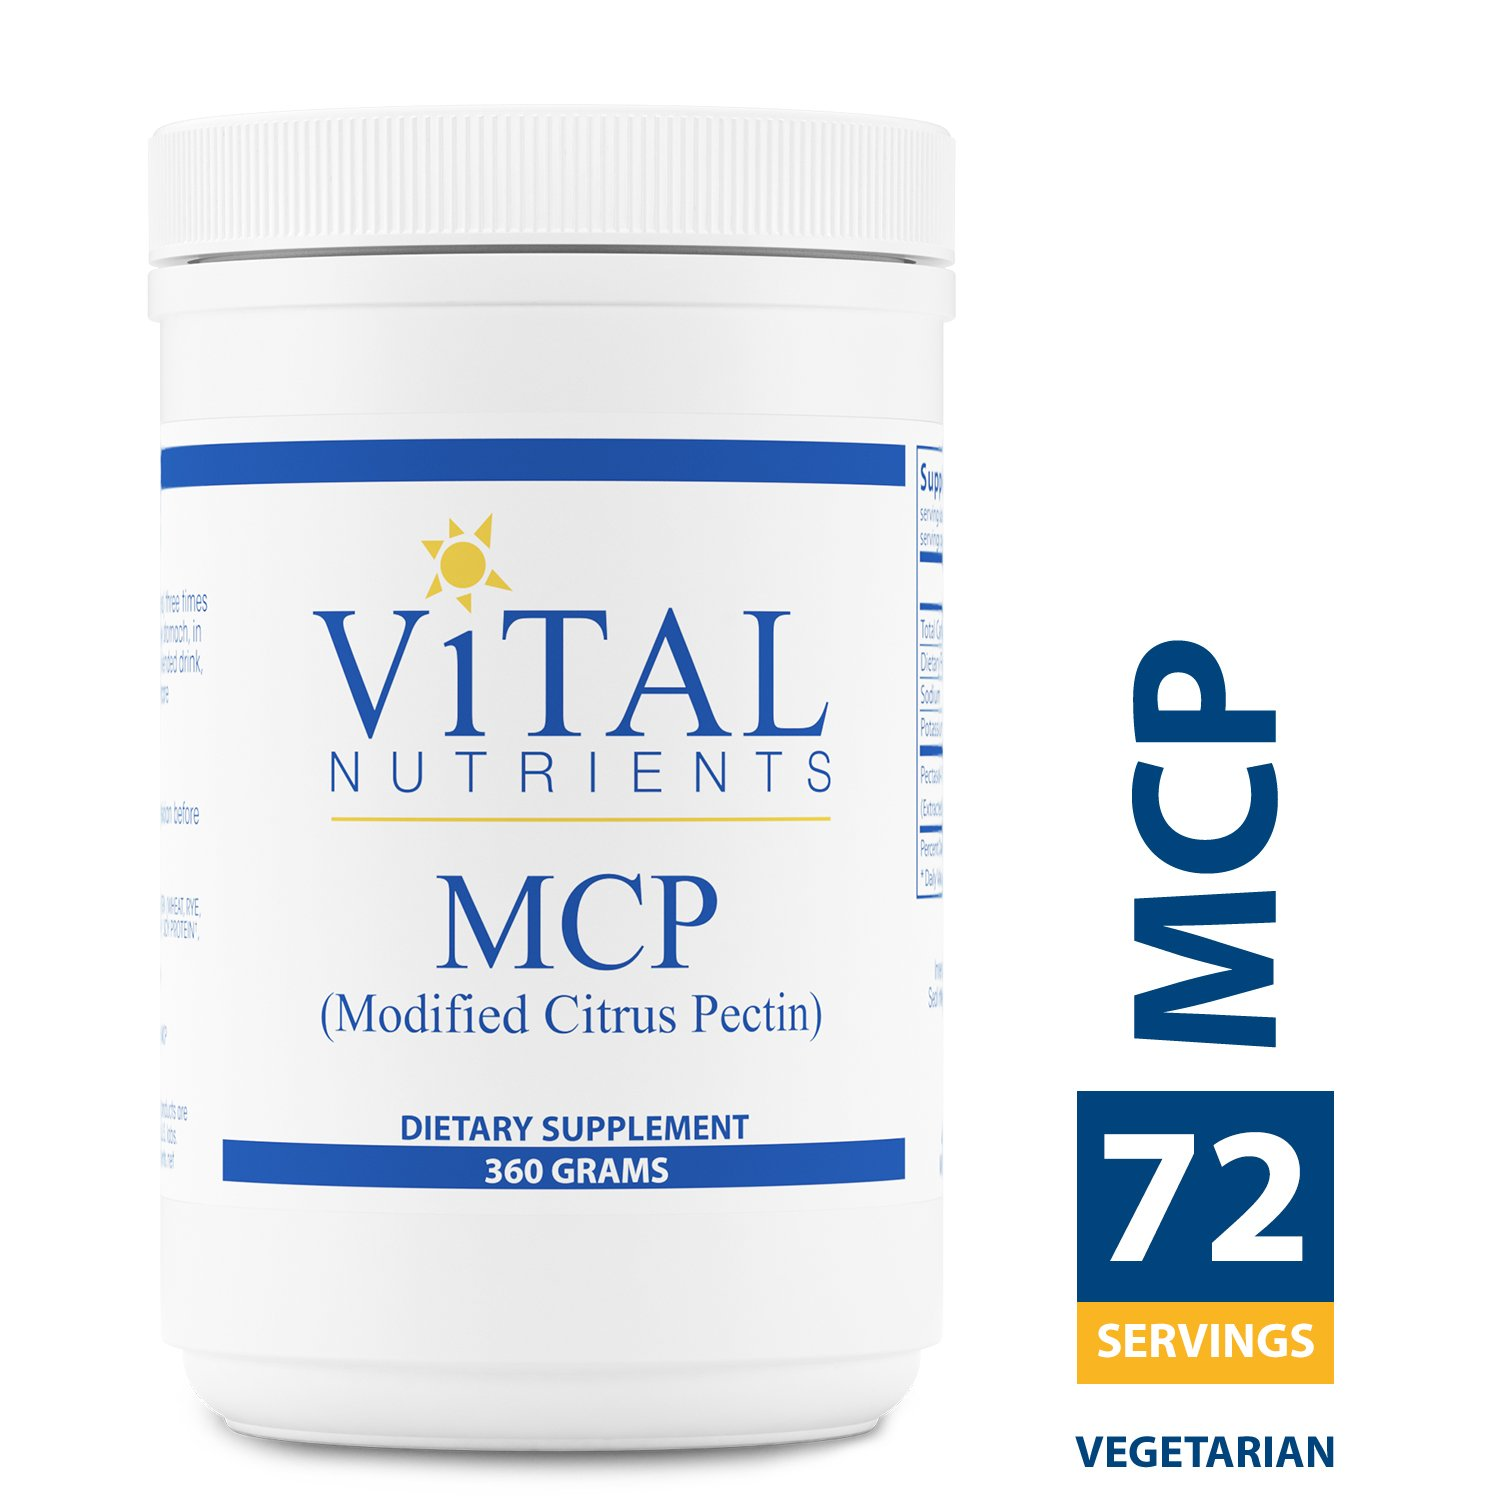 Vital Nutrients - MCP (Modified Citrus Pectin) - Immune System Support - Vegetarian - 360 Grams per Bottle by Vital Nutrients